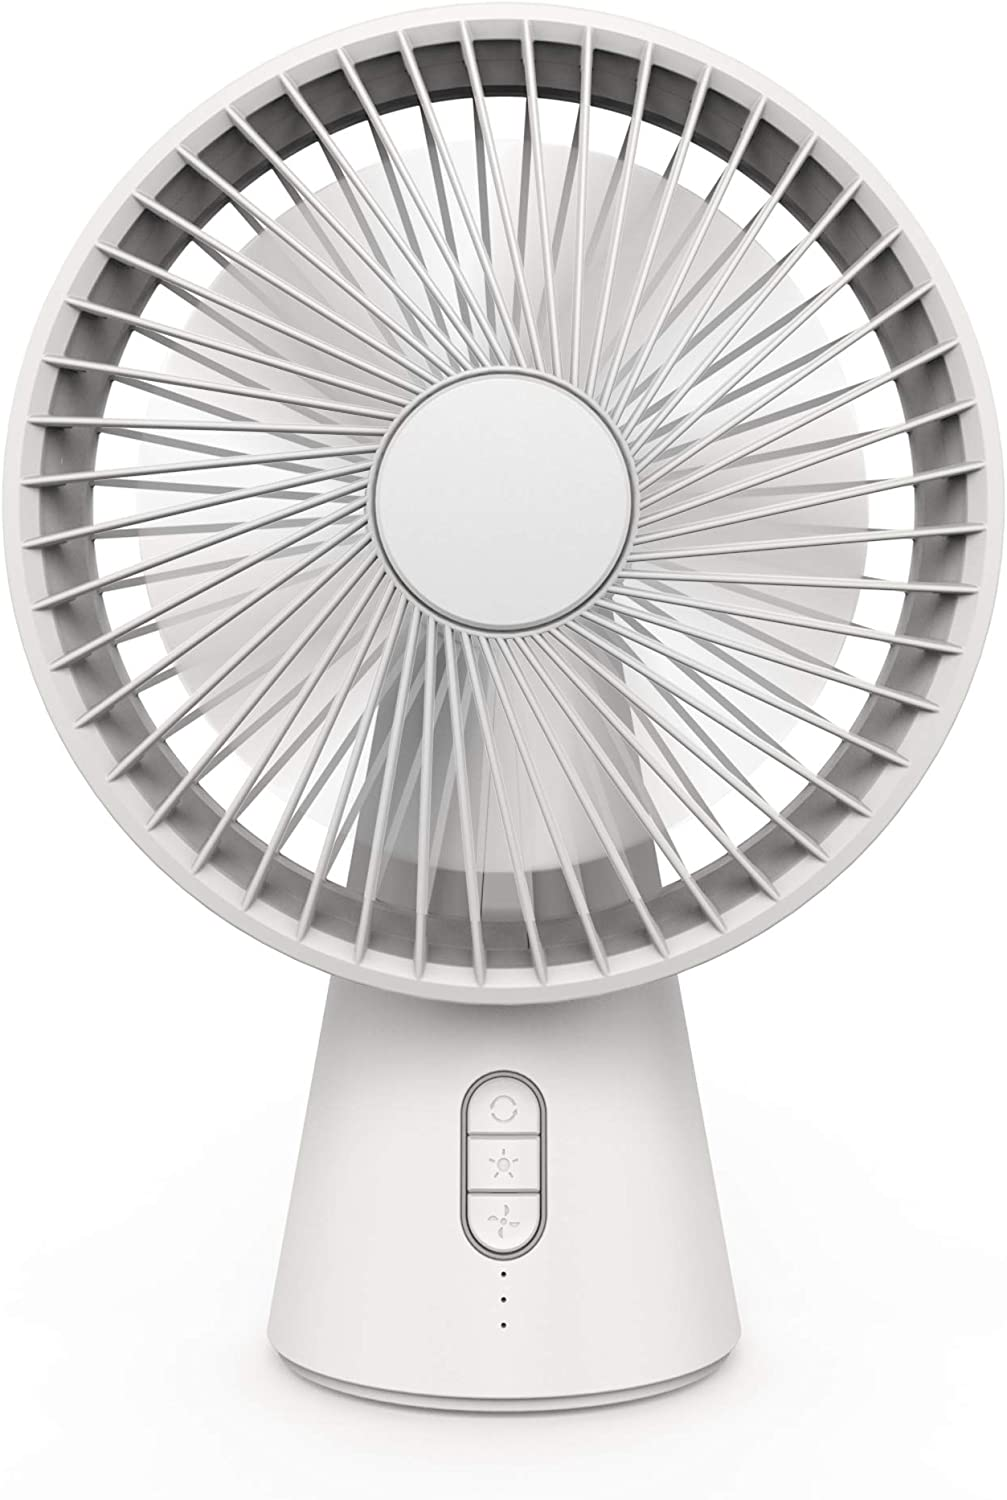 Desk Fan with LED Lamp Ultra Silent USB Fan Rechargeable Personal Fan Portable Fan 4 Modes Lightweight Strong Wind Quiet Table Fan with Handle for Travel Office Room Household